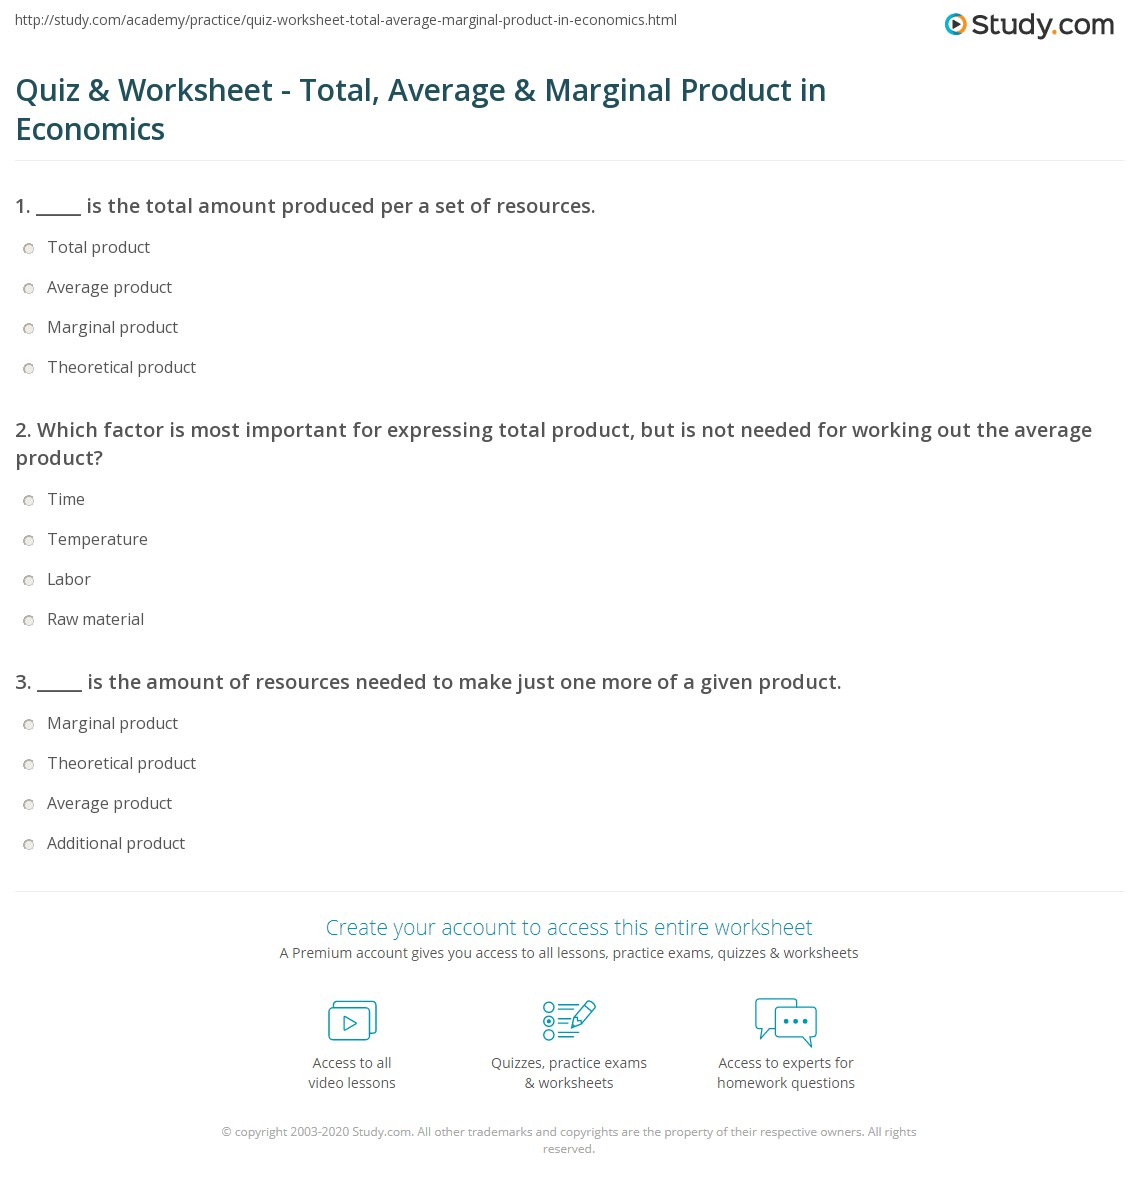 what is the average product